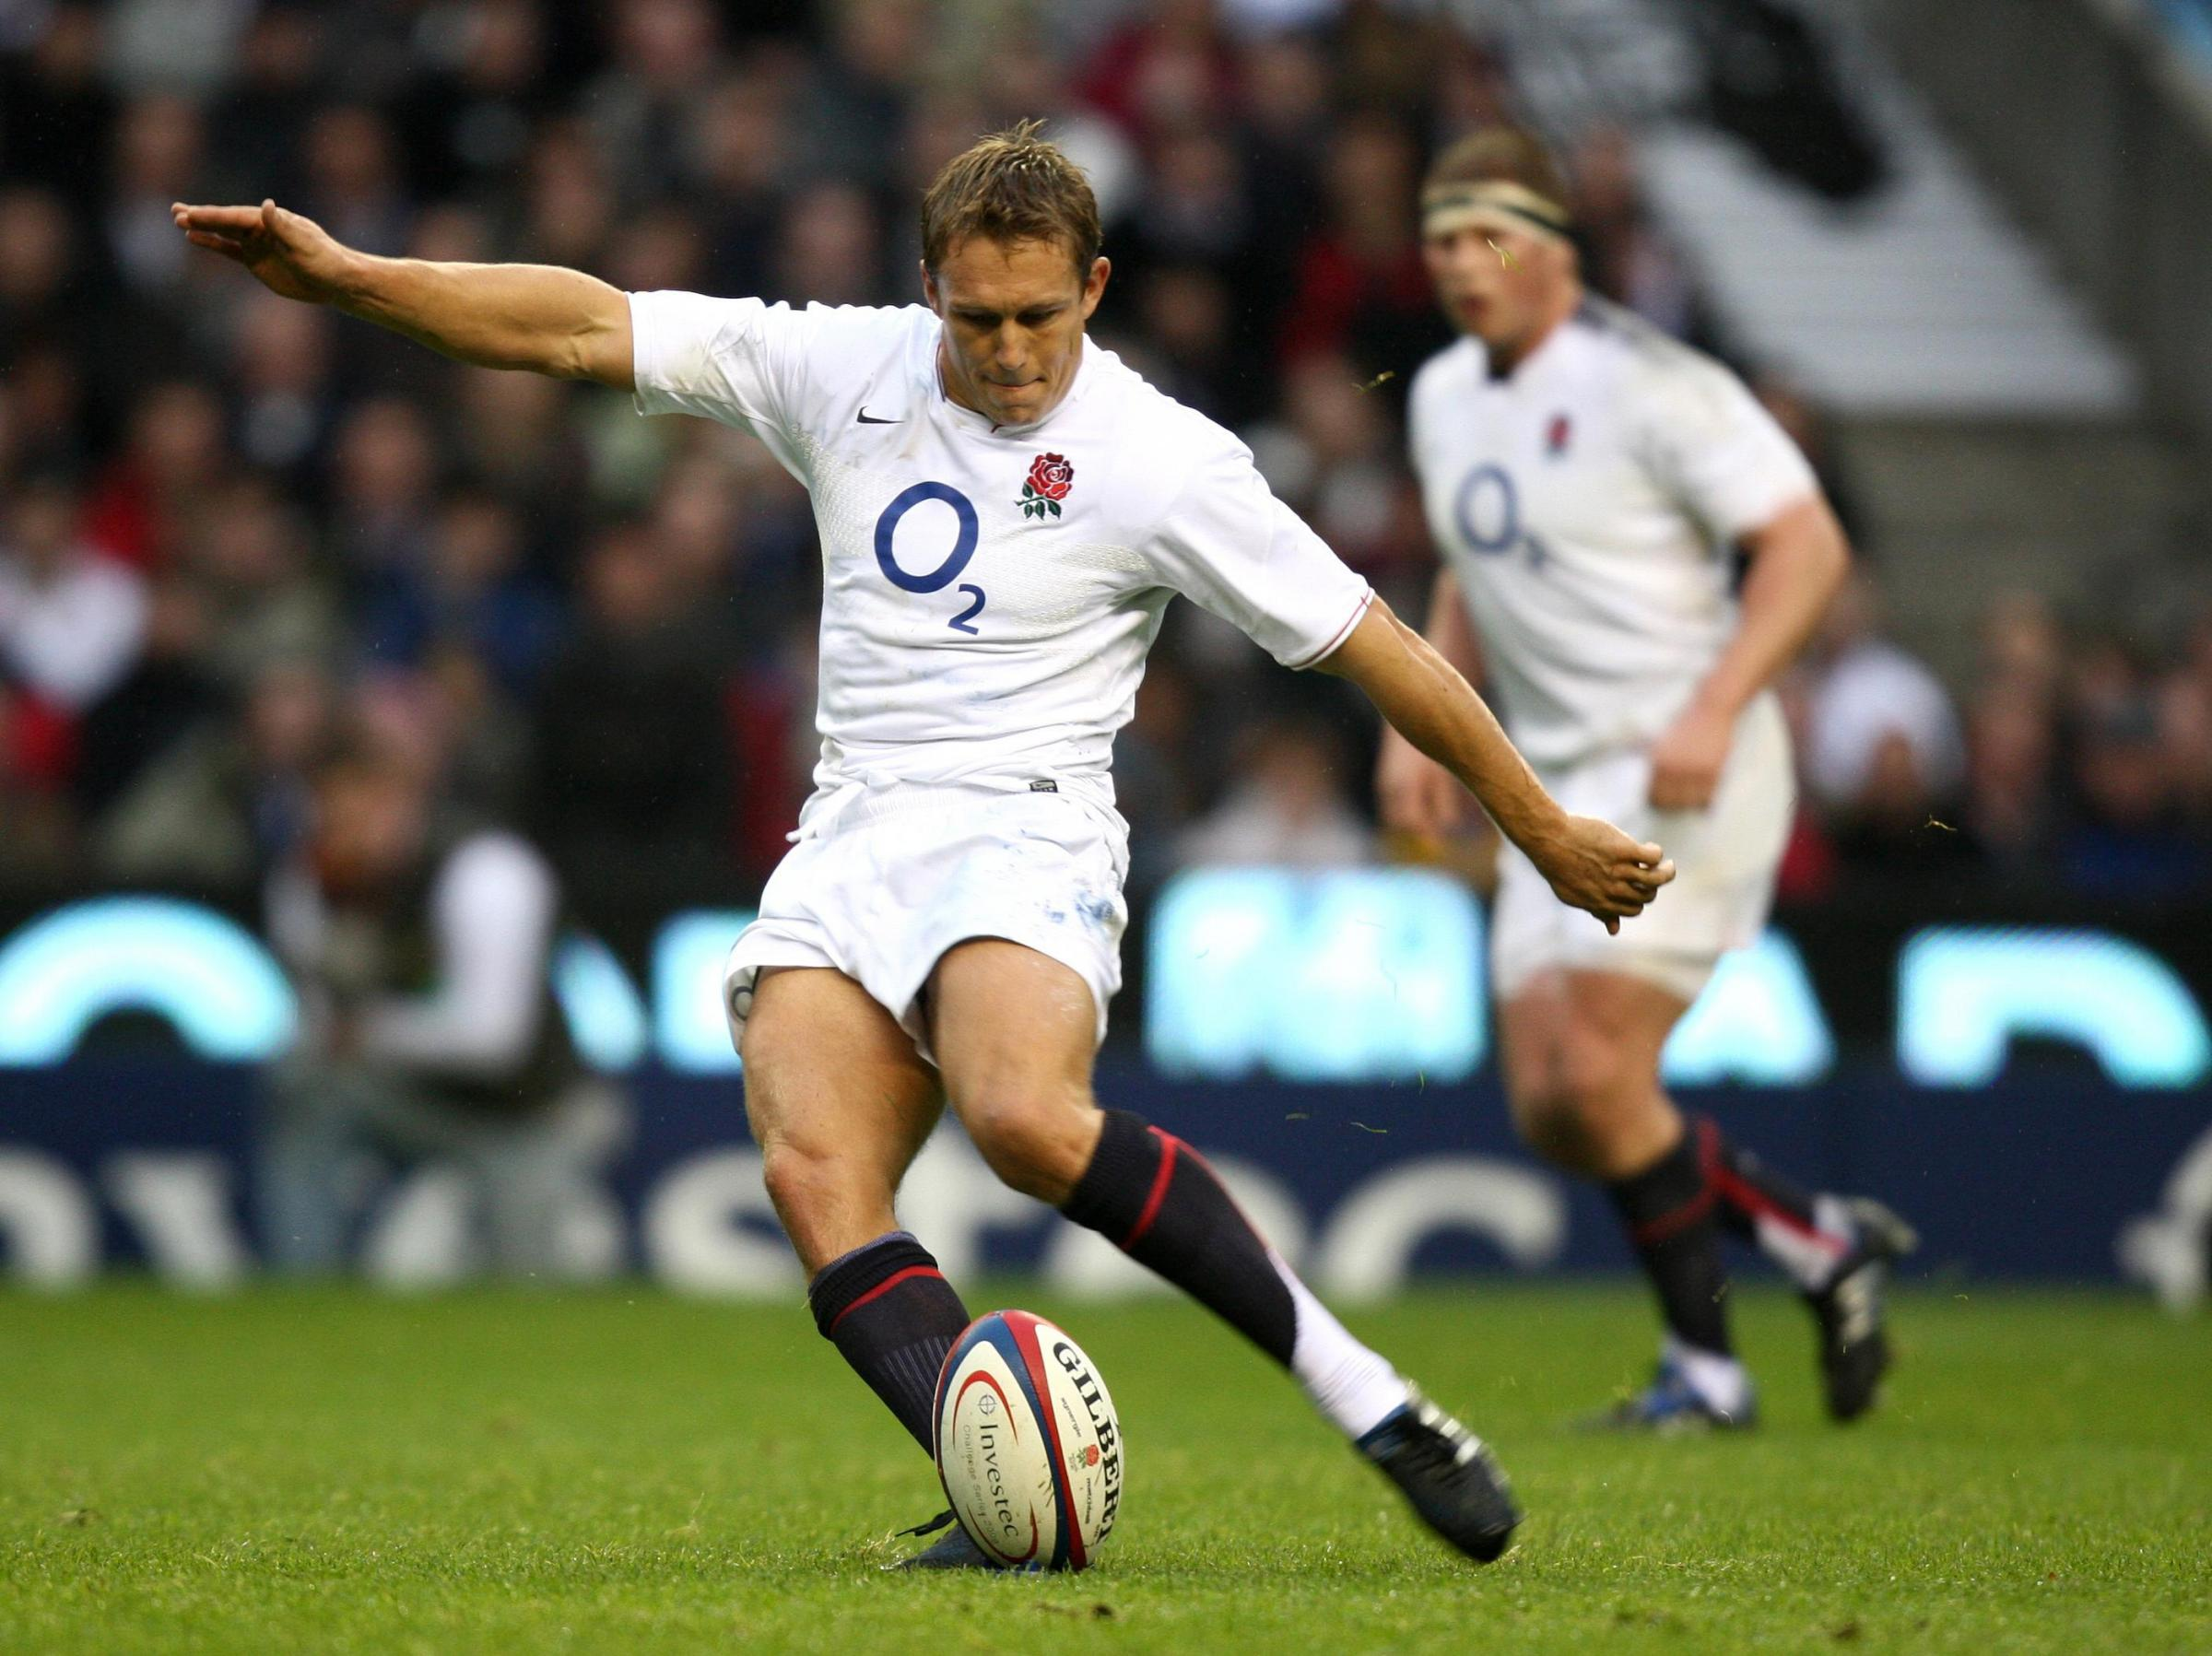 Rugby hero: England's Jonny Wilkinson kicks a penalty during a 2009 match at Twickenham   Picture: David Davies/PA Photos